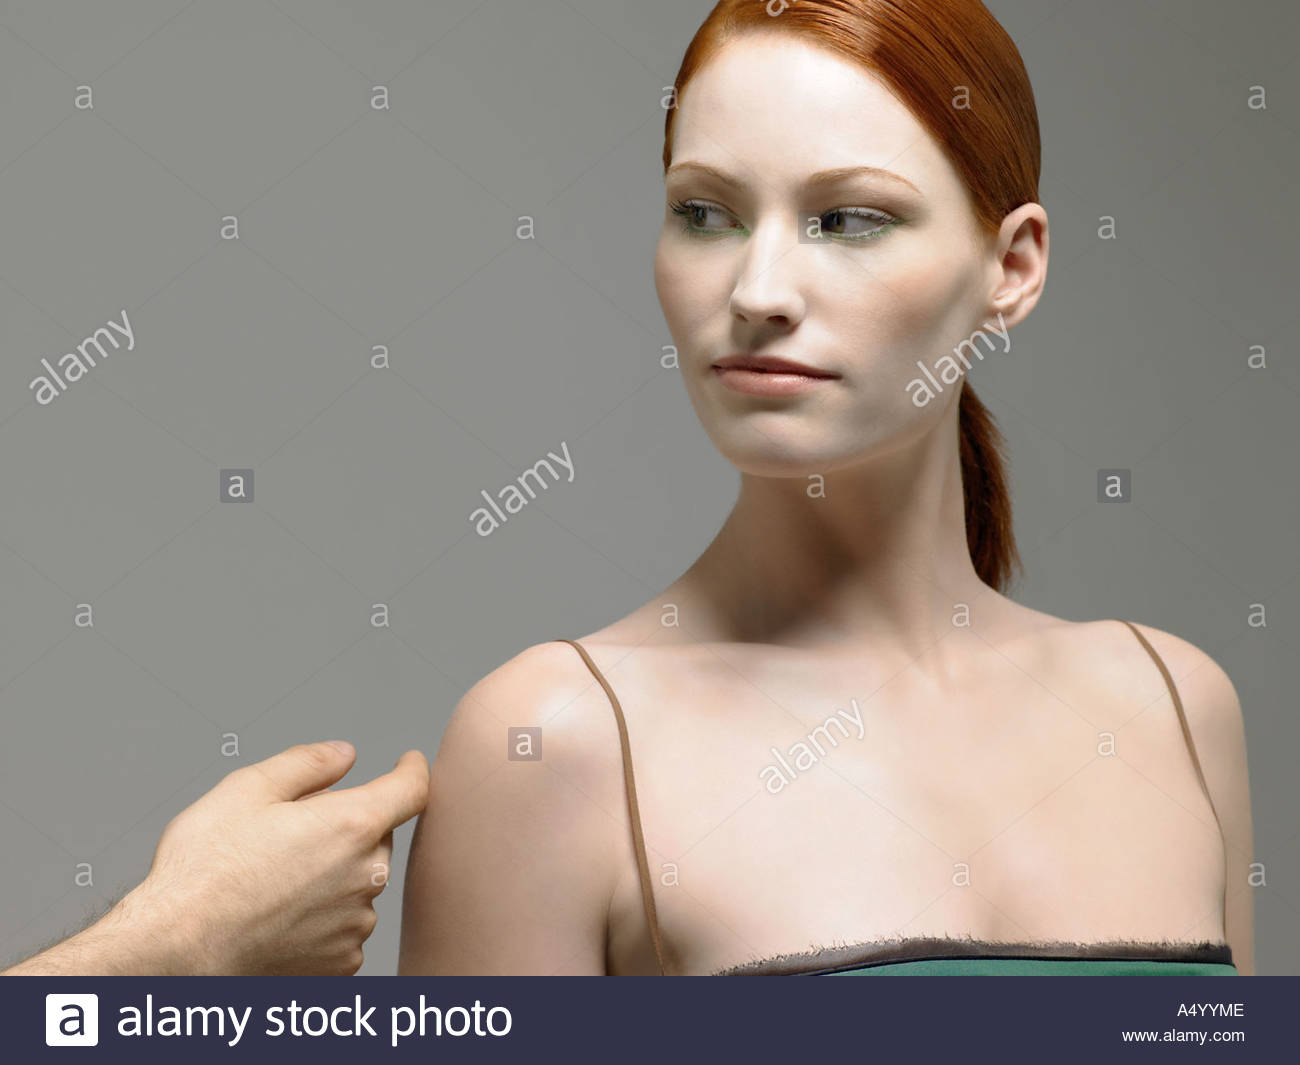 Woman having her arm touched - Stock Image